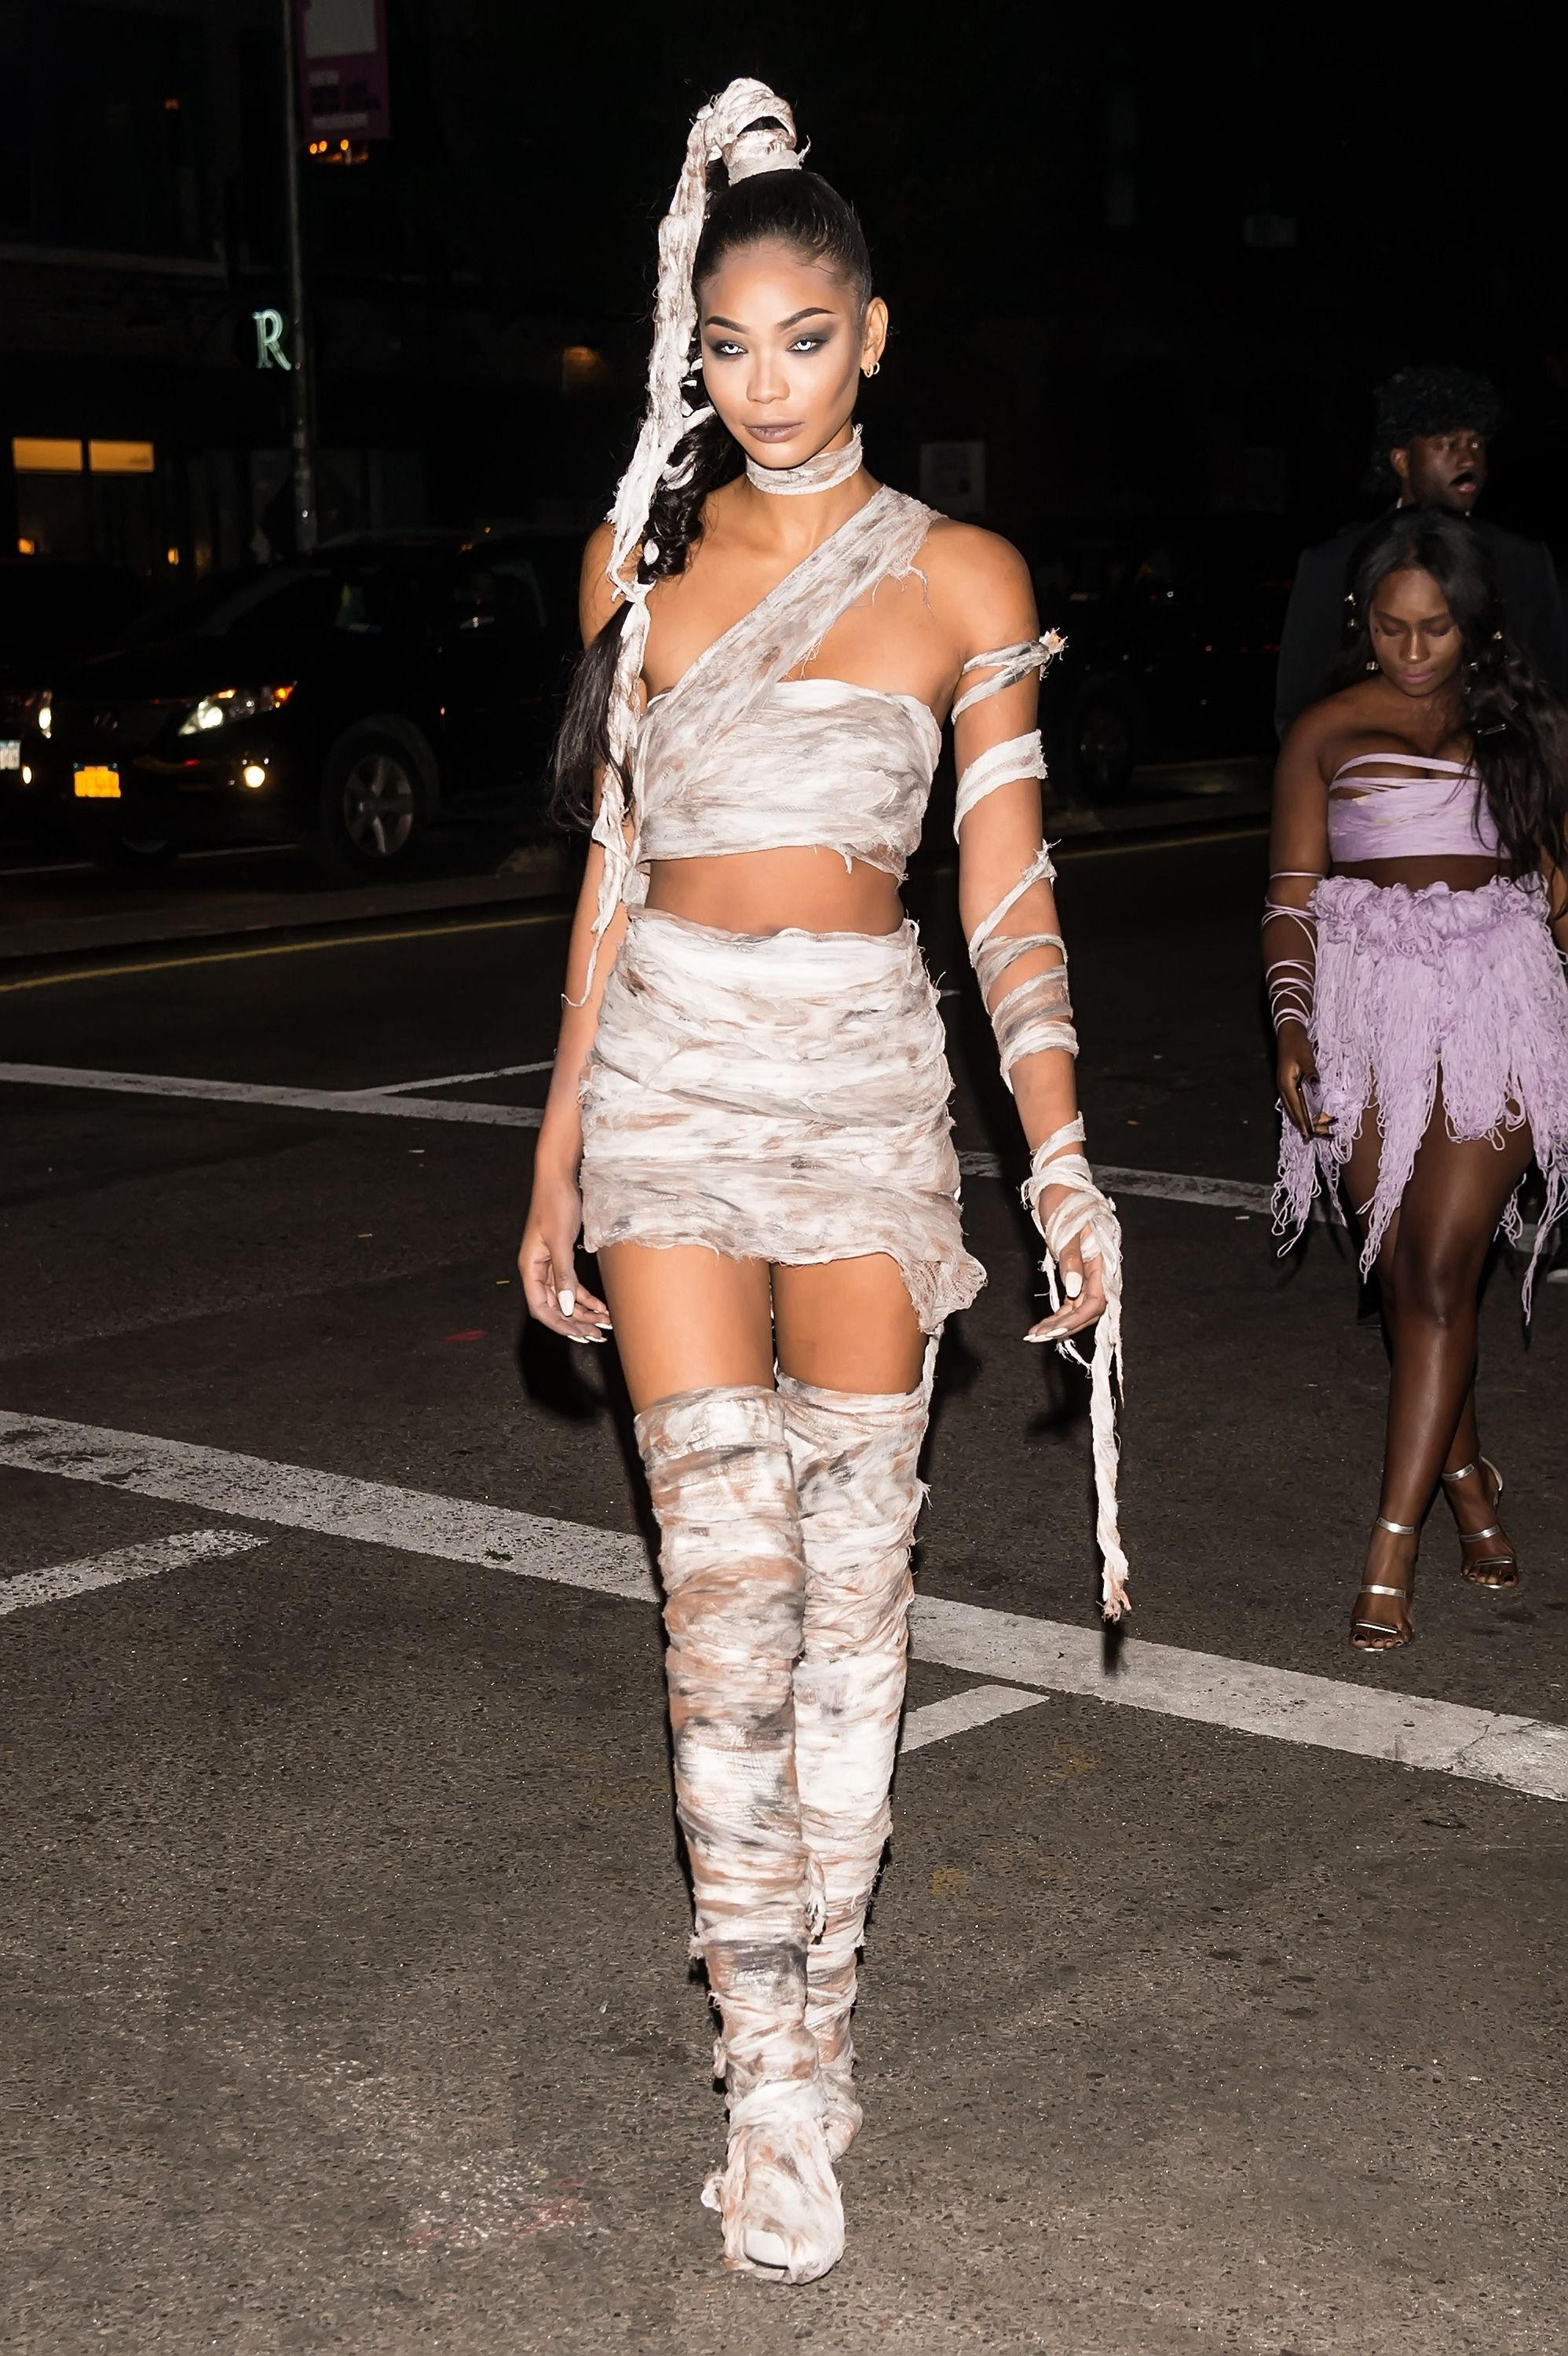 20 best celebrity halloween costumes of all time - epic celebrity